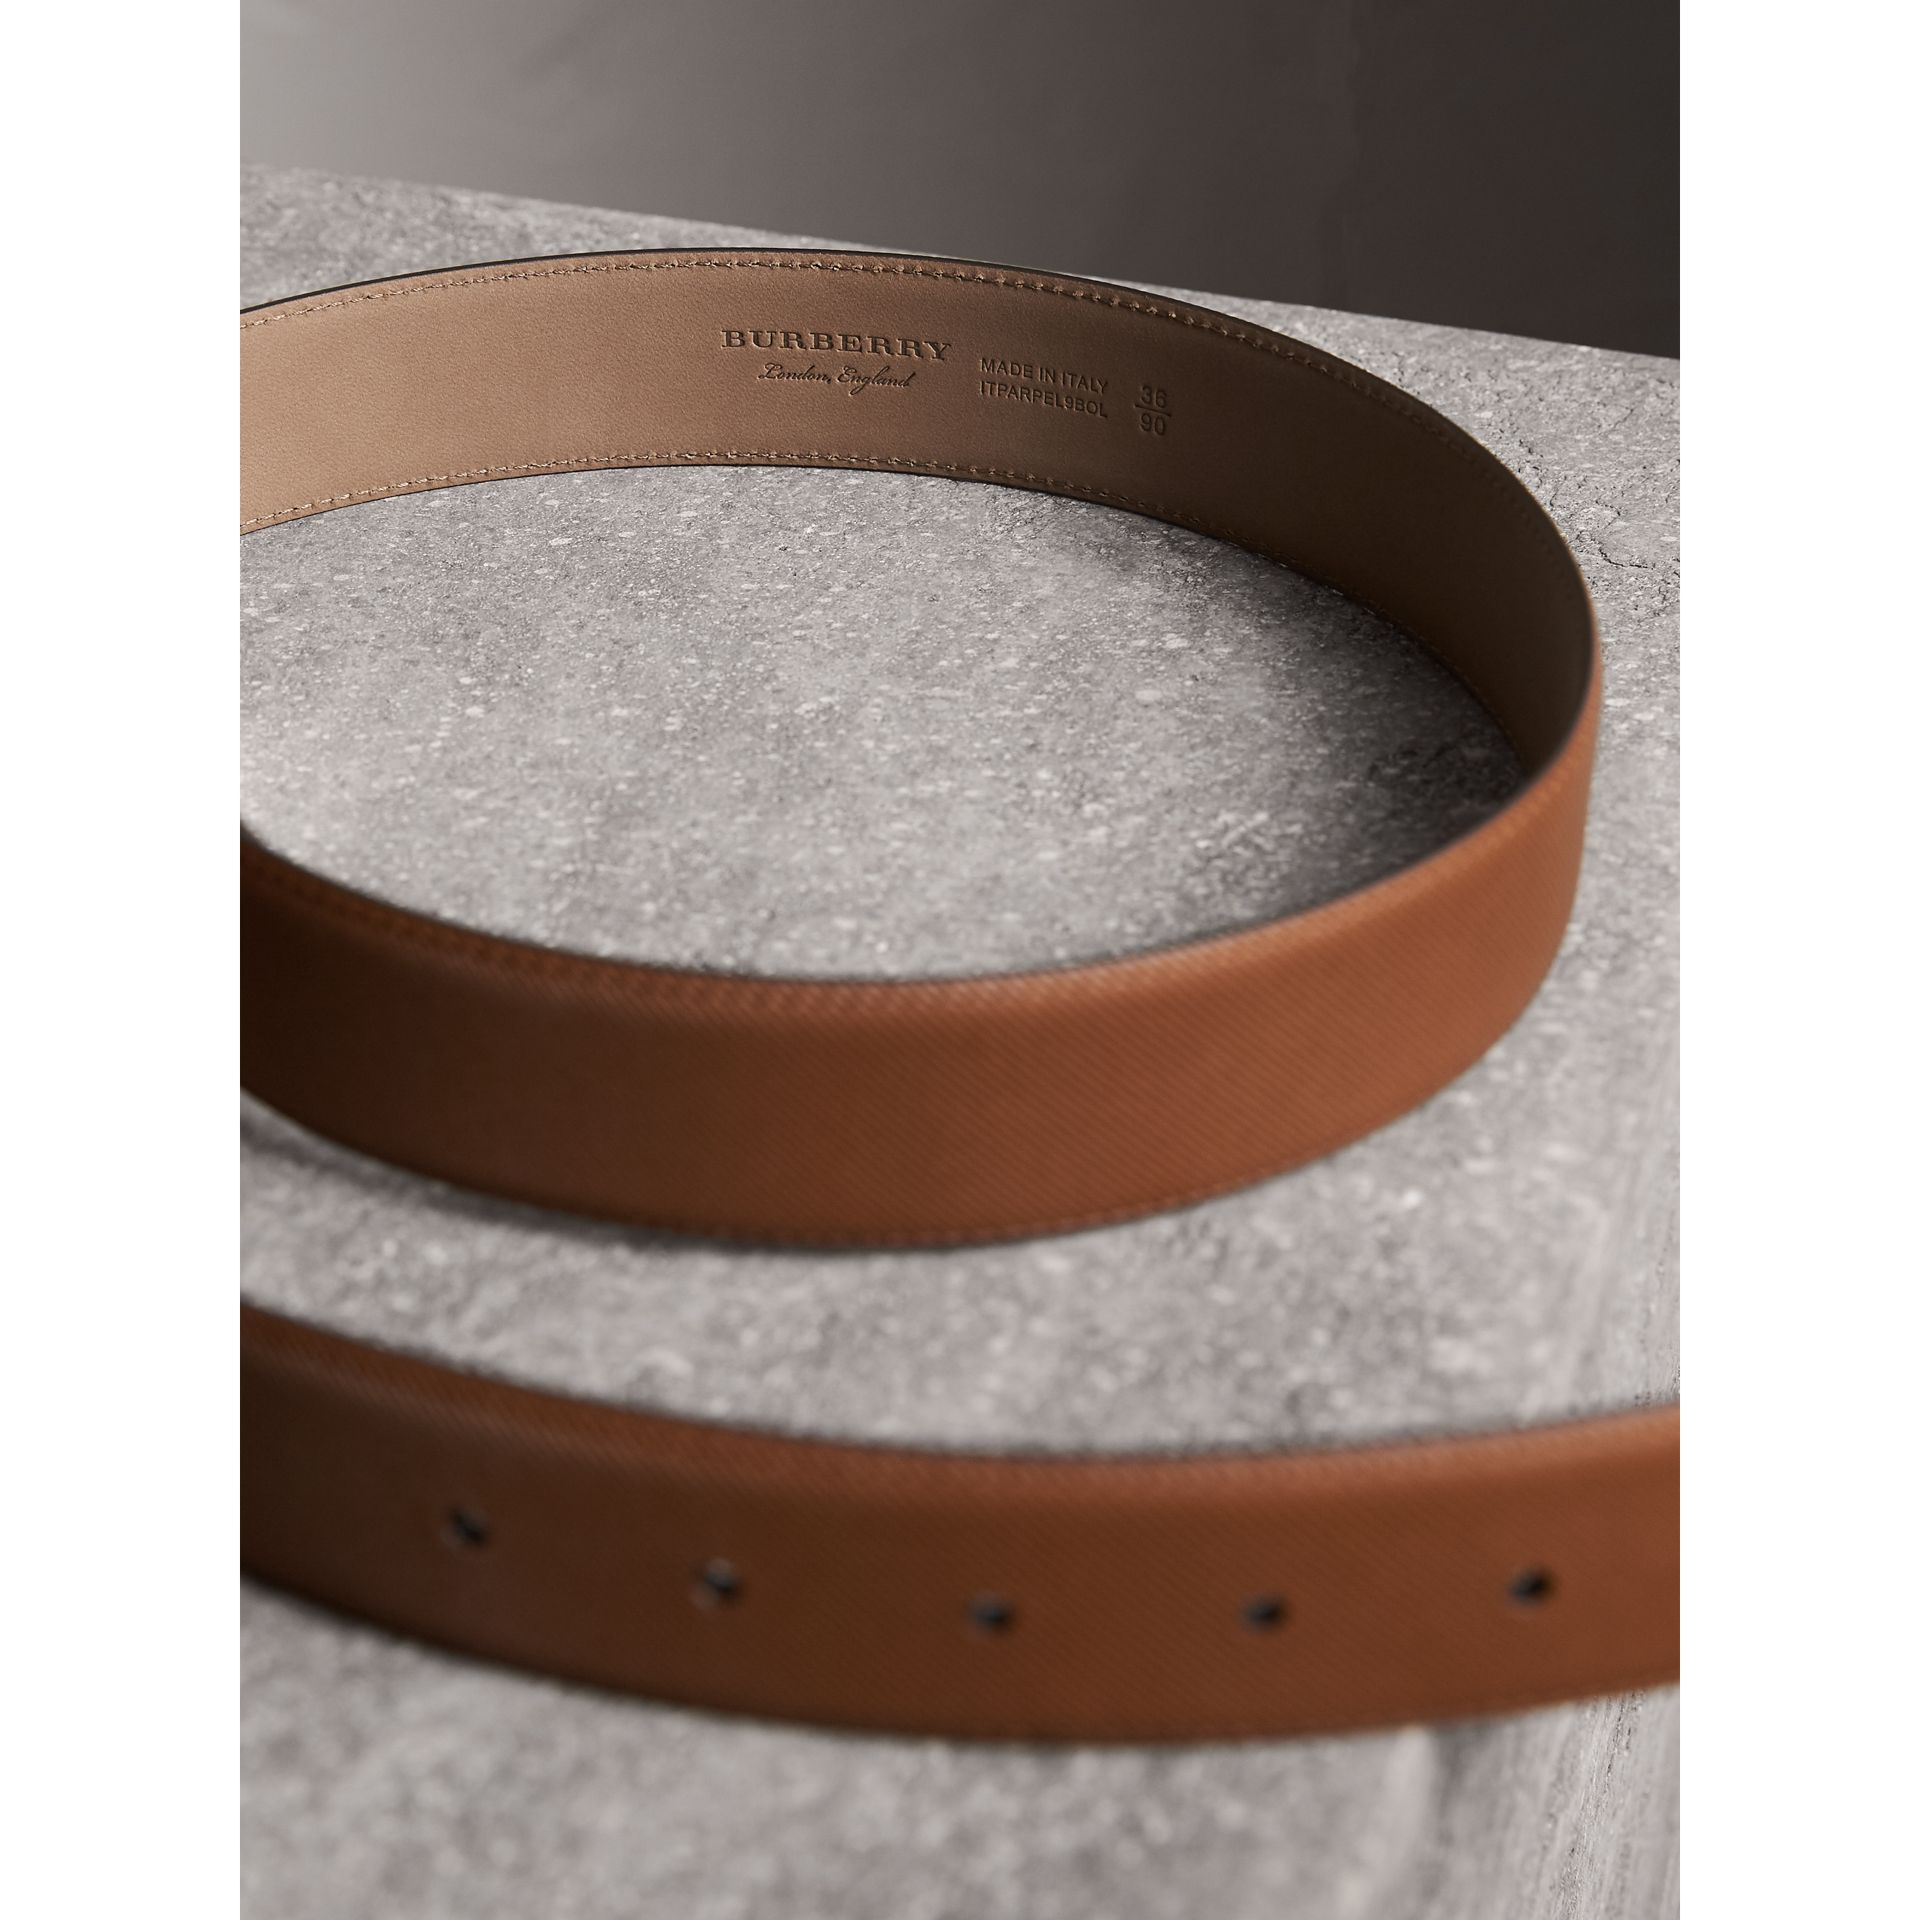 Brass Plaque Buckle Trench Leather Belt in Tan - Men | Burberry United Kingdom - gallery image 3